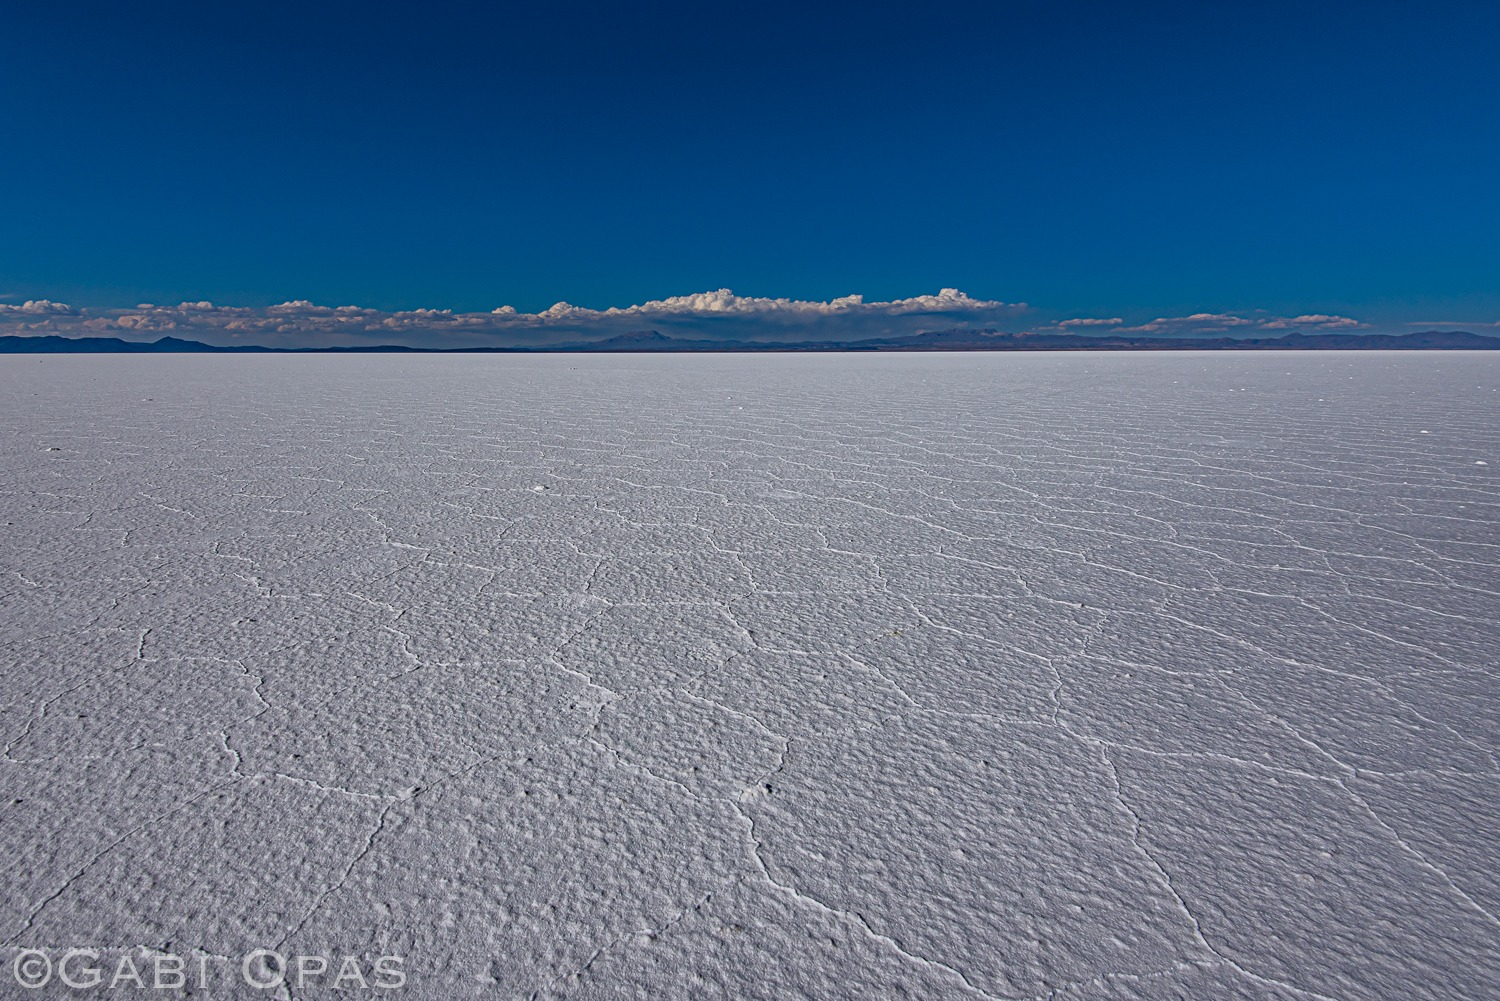 Landscape where you can see salt flats